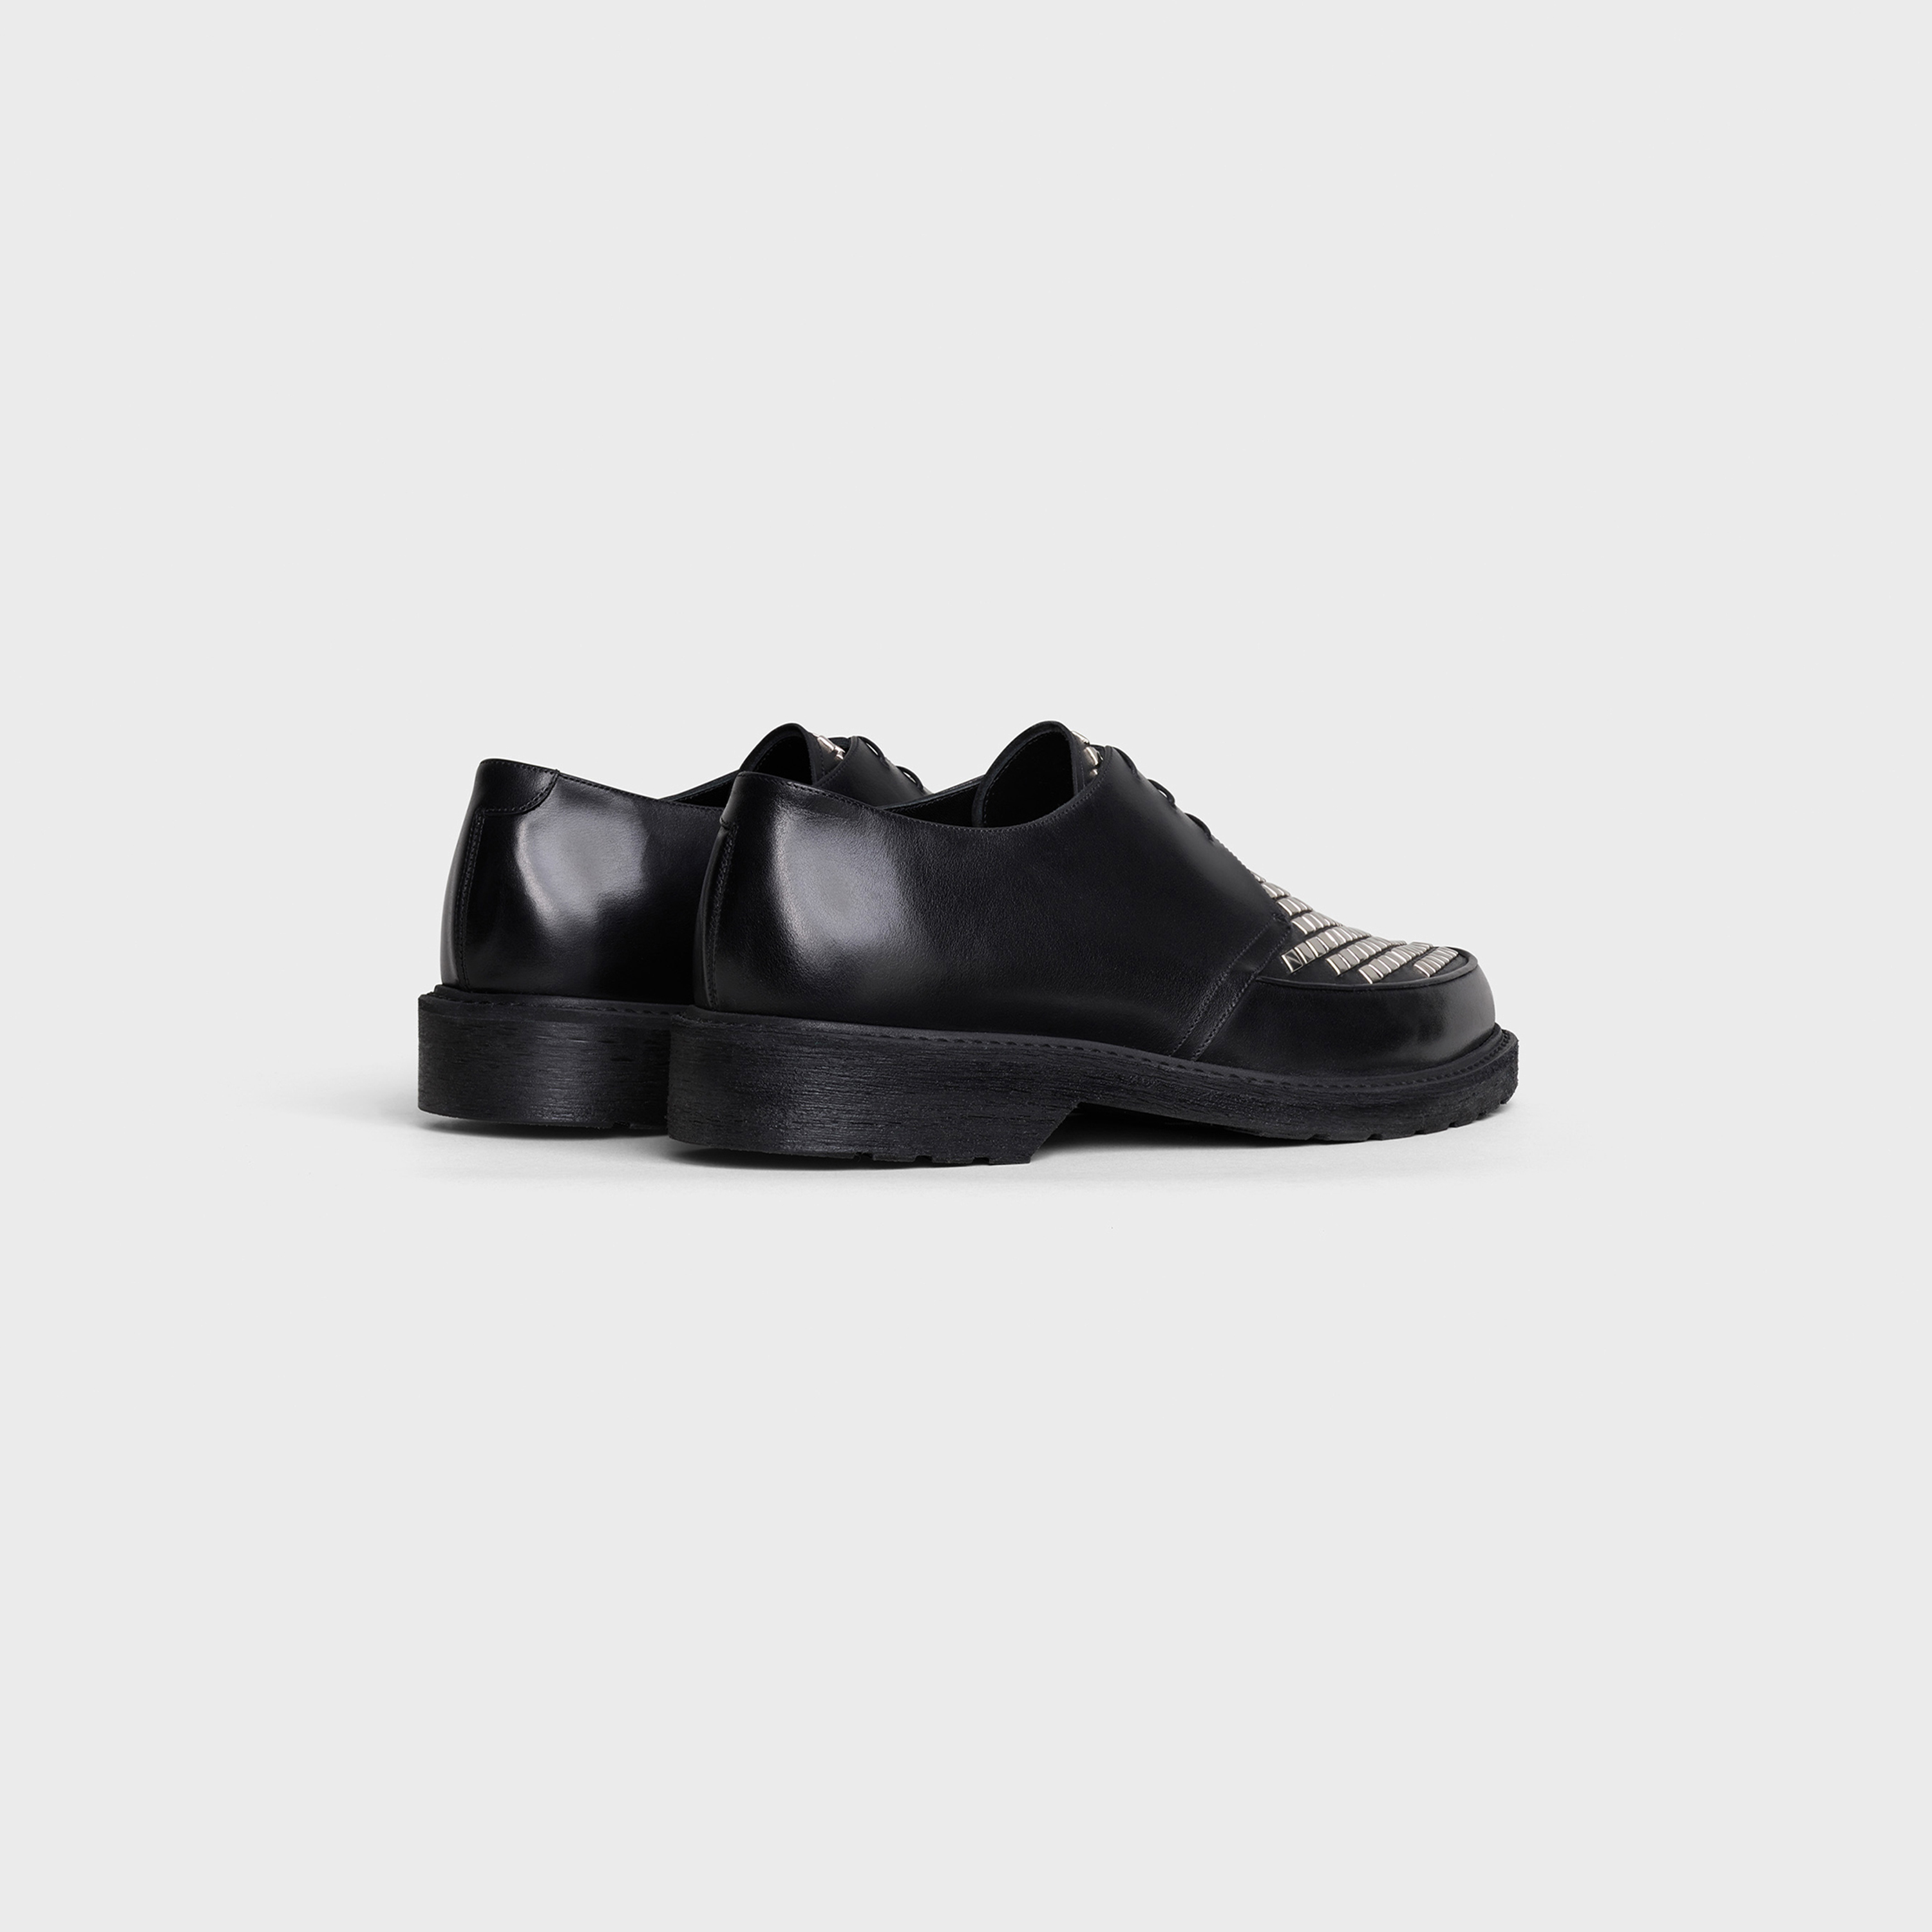 CELINE CREEPERS Derby with studded apron in Shiny calfskin | CELINE